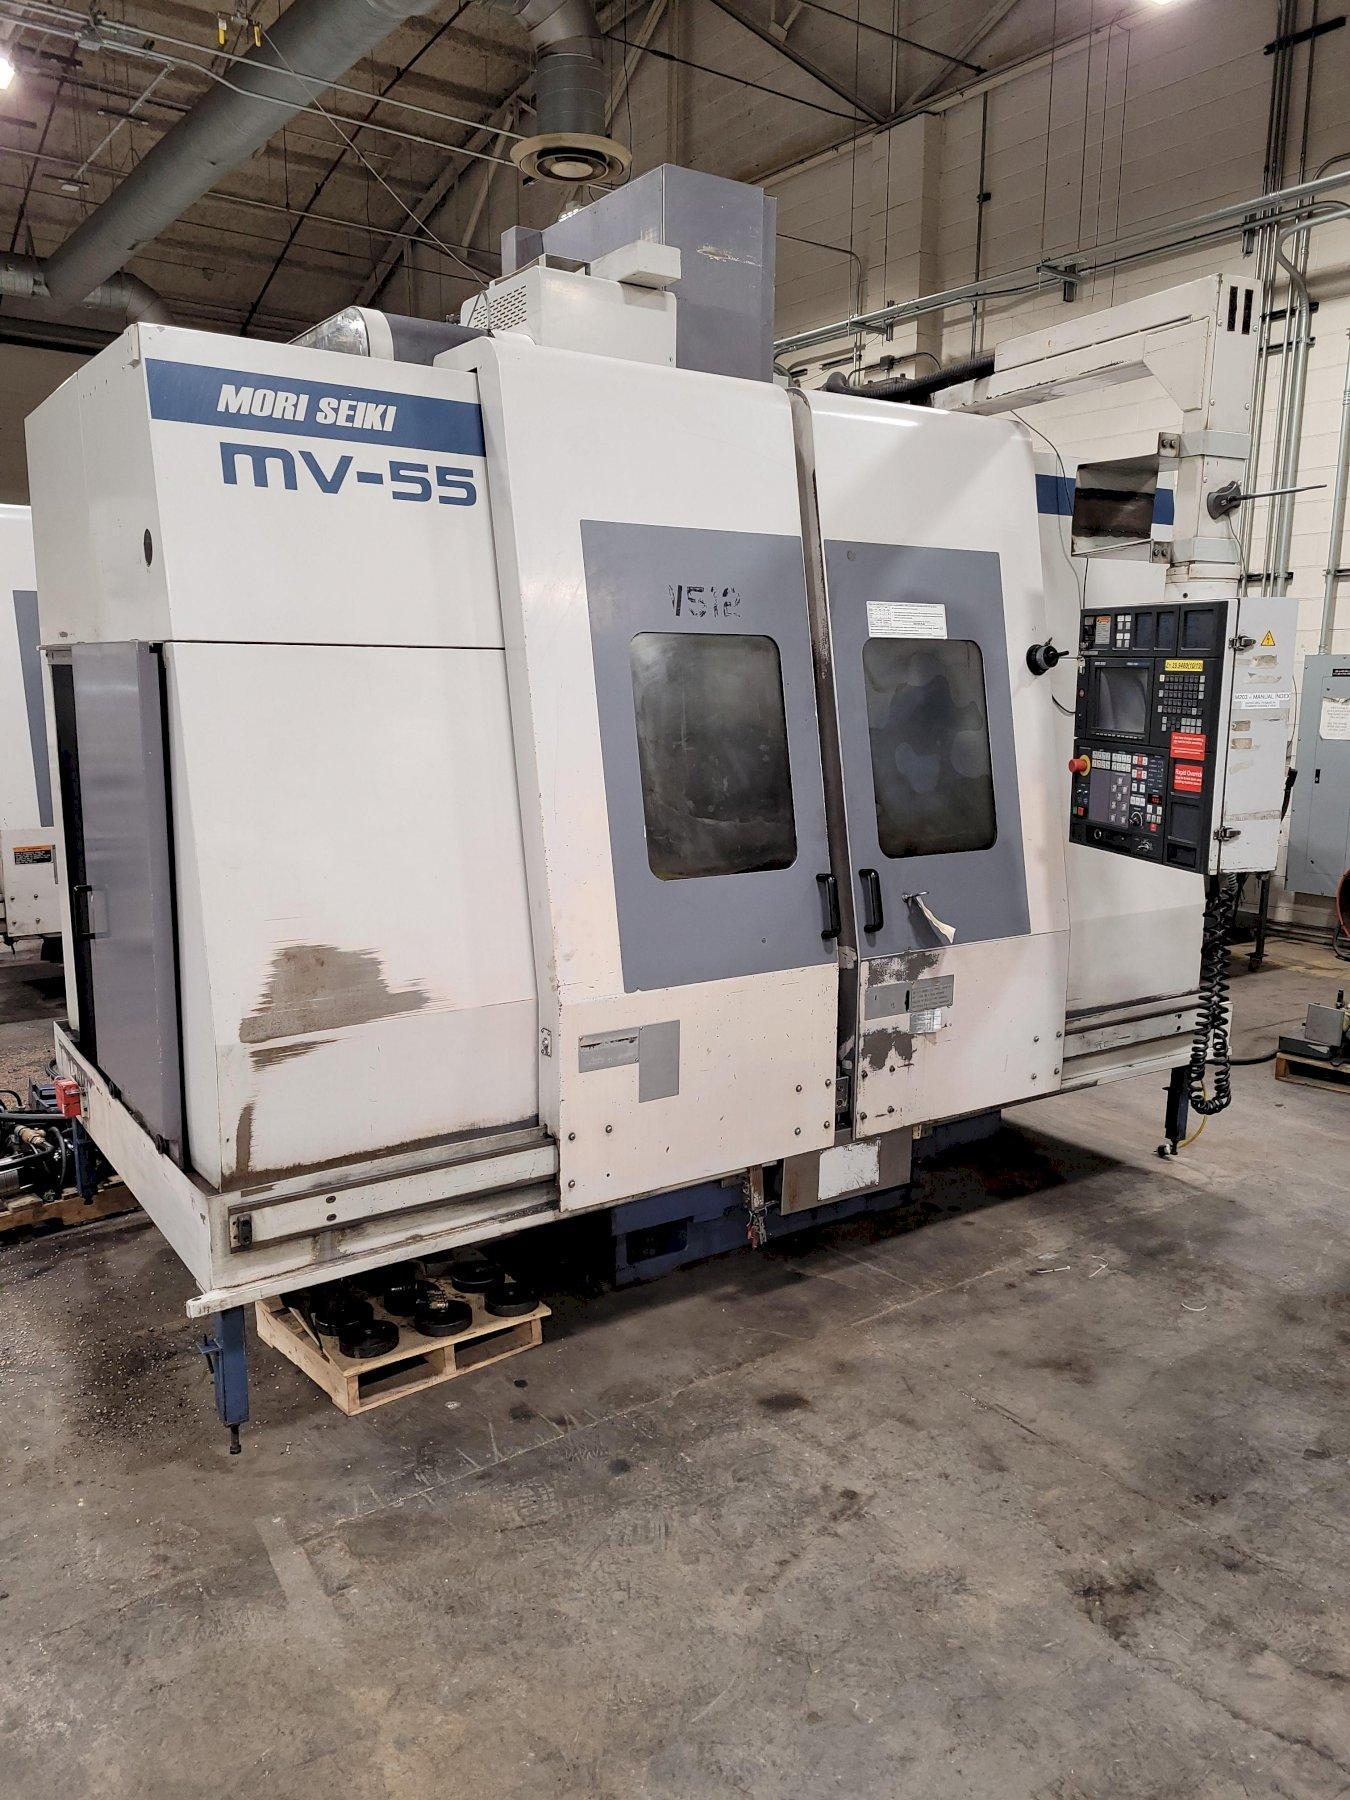 Mori Seiki MV-55/50 CNC Vertical Machining Center